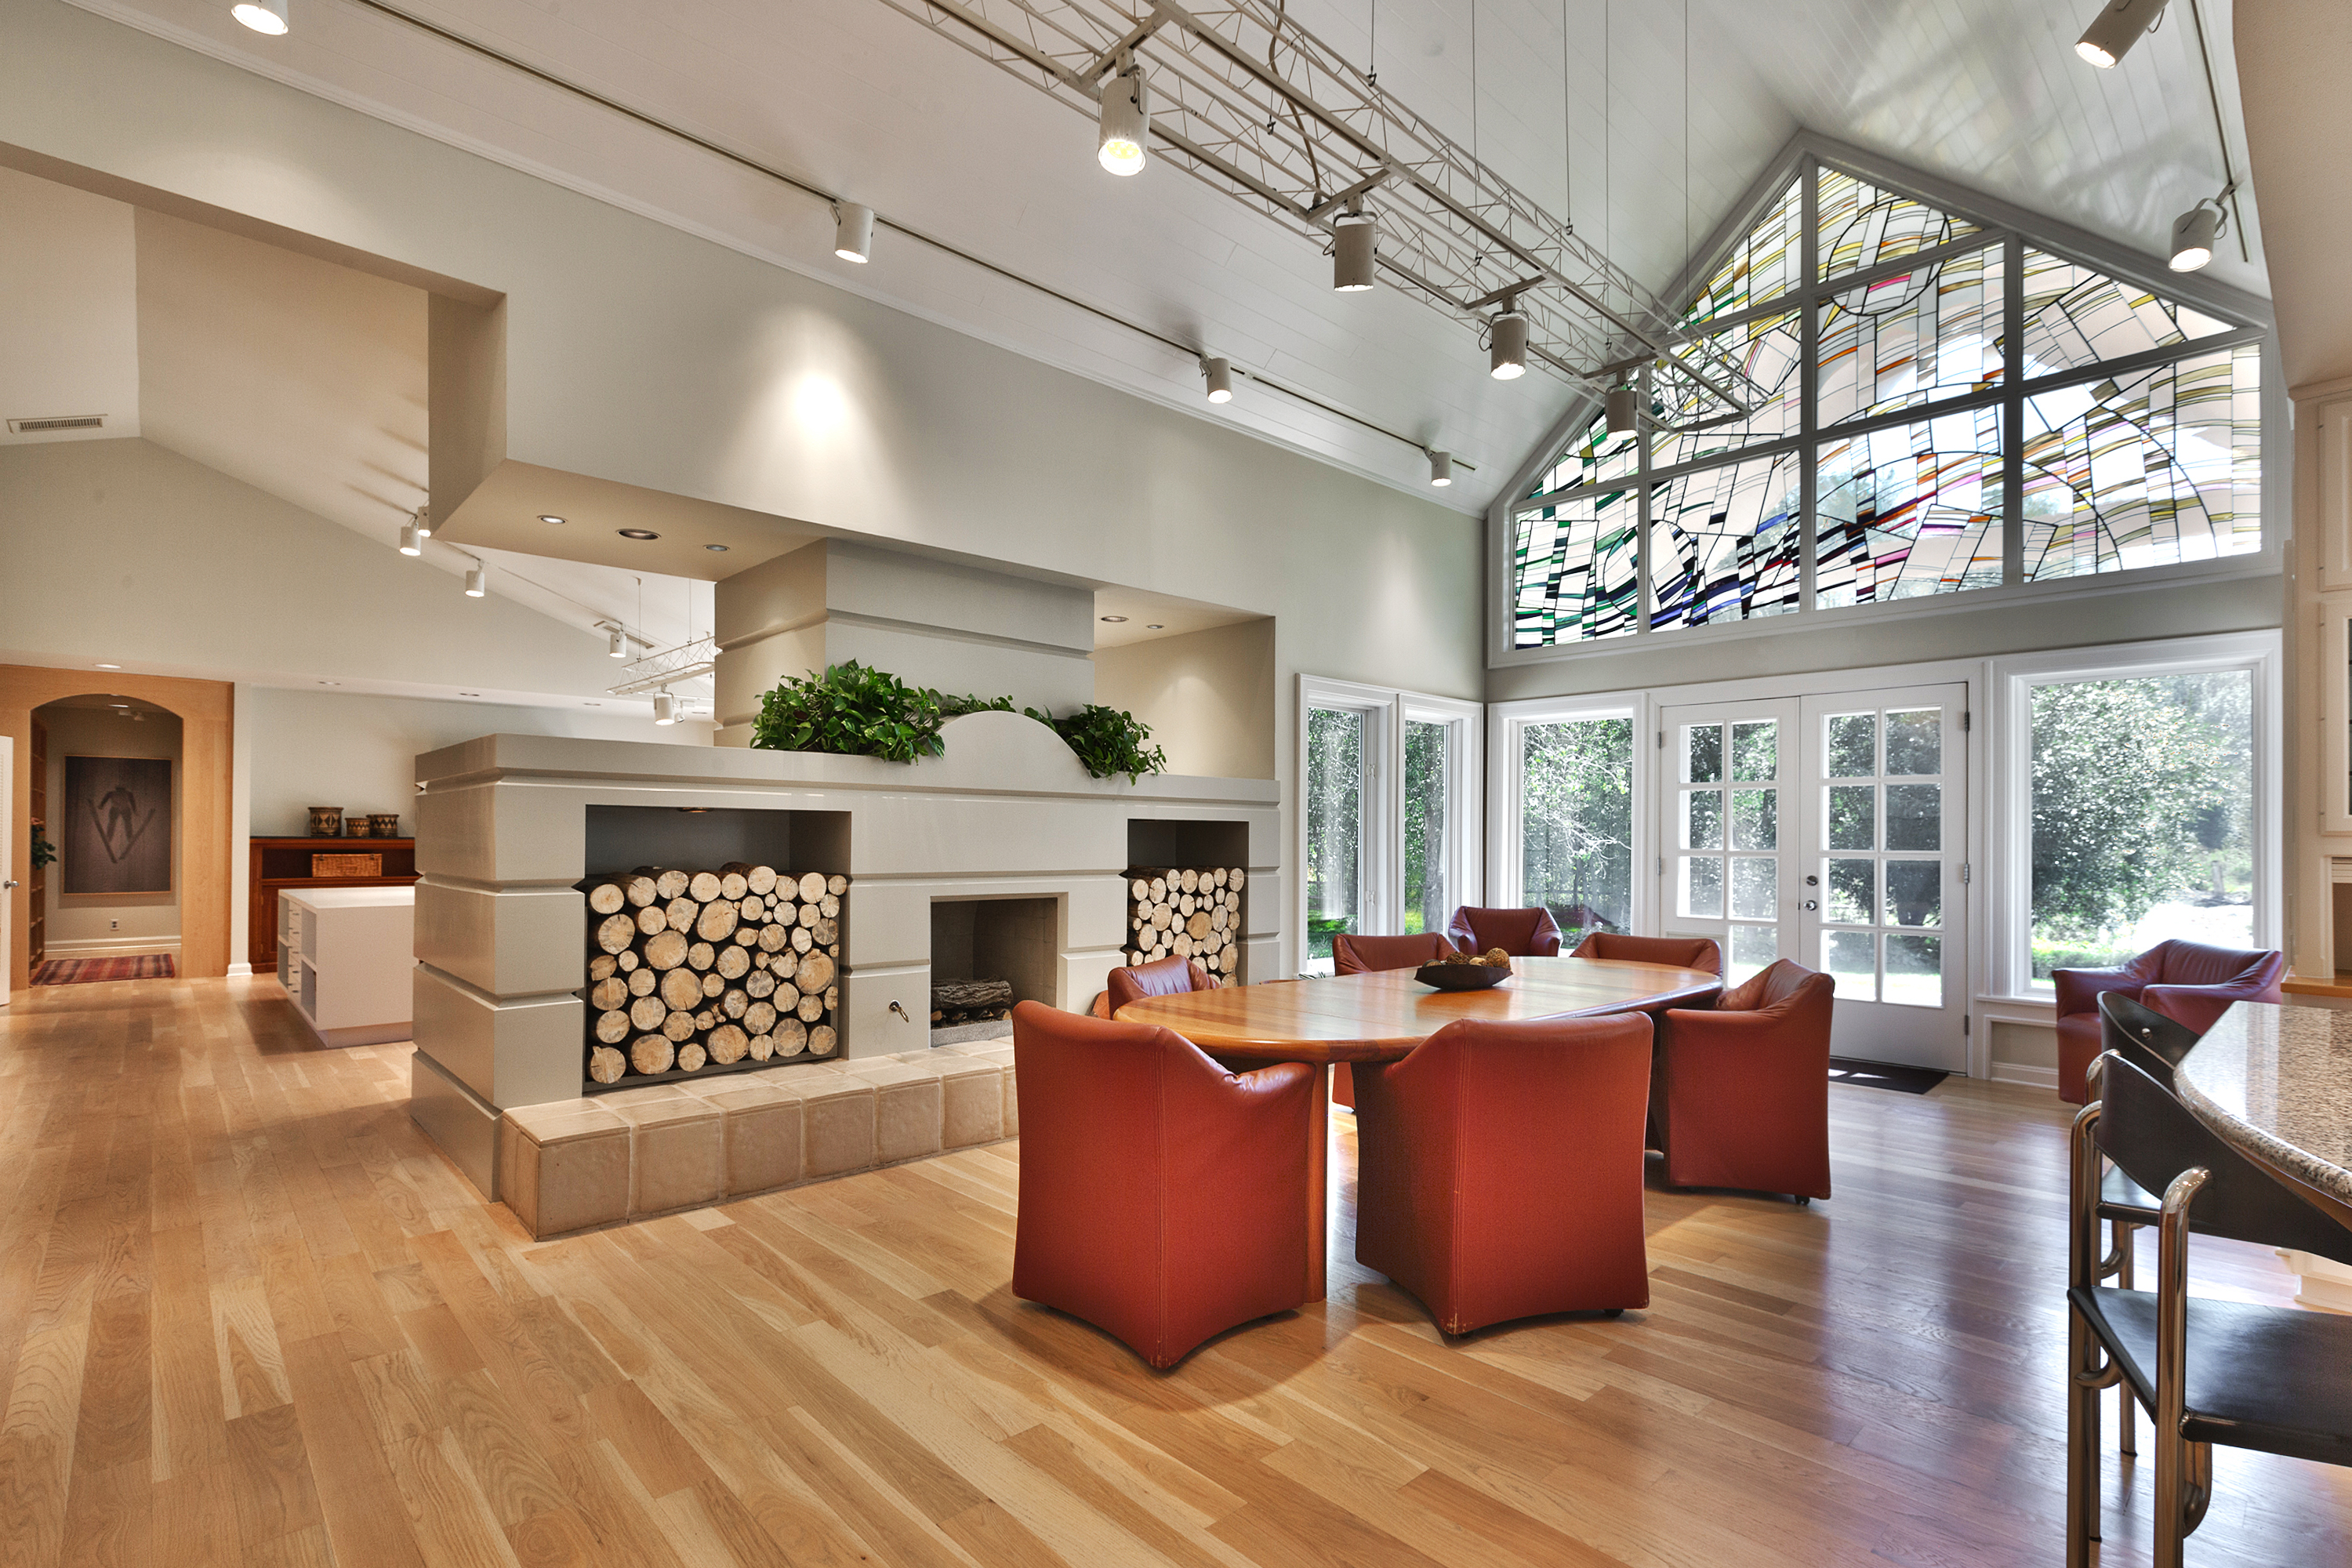 Fantastic Top 10 Luxury Home Design Trends To Expect This Year Download Free Architecture Designs Scobabritishbridgeorg